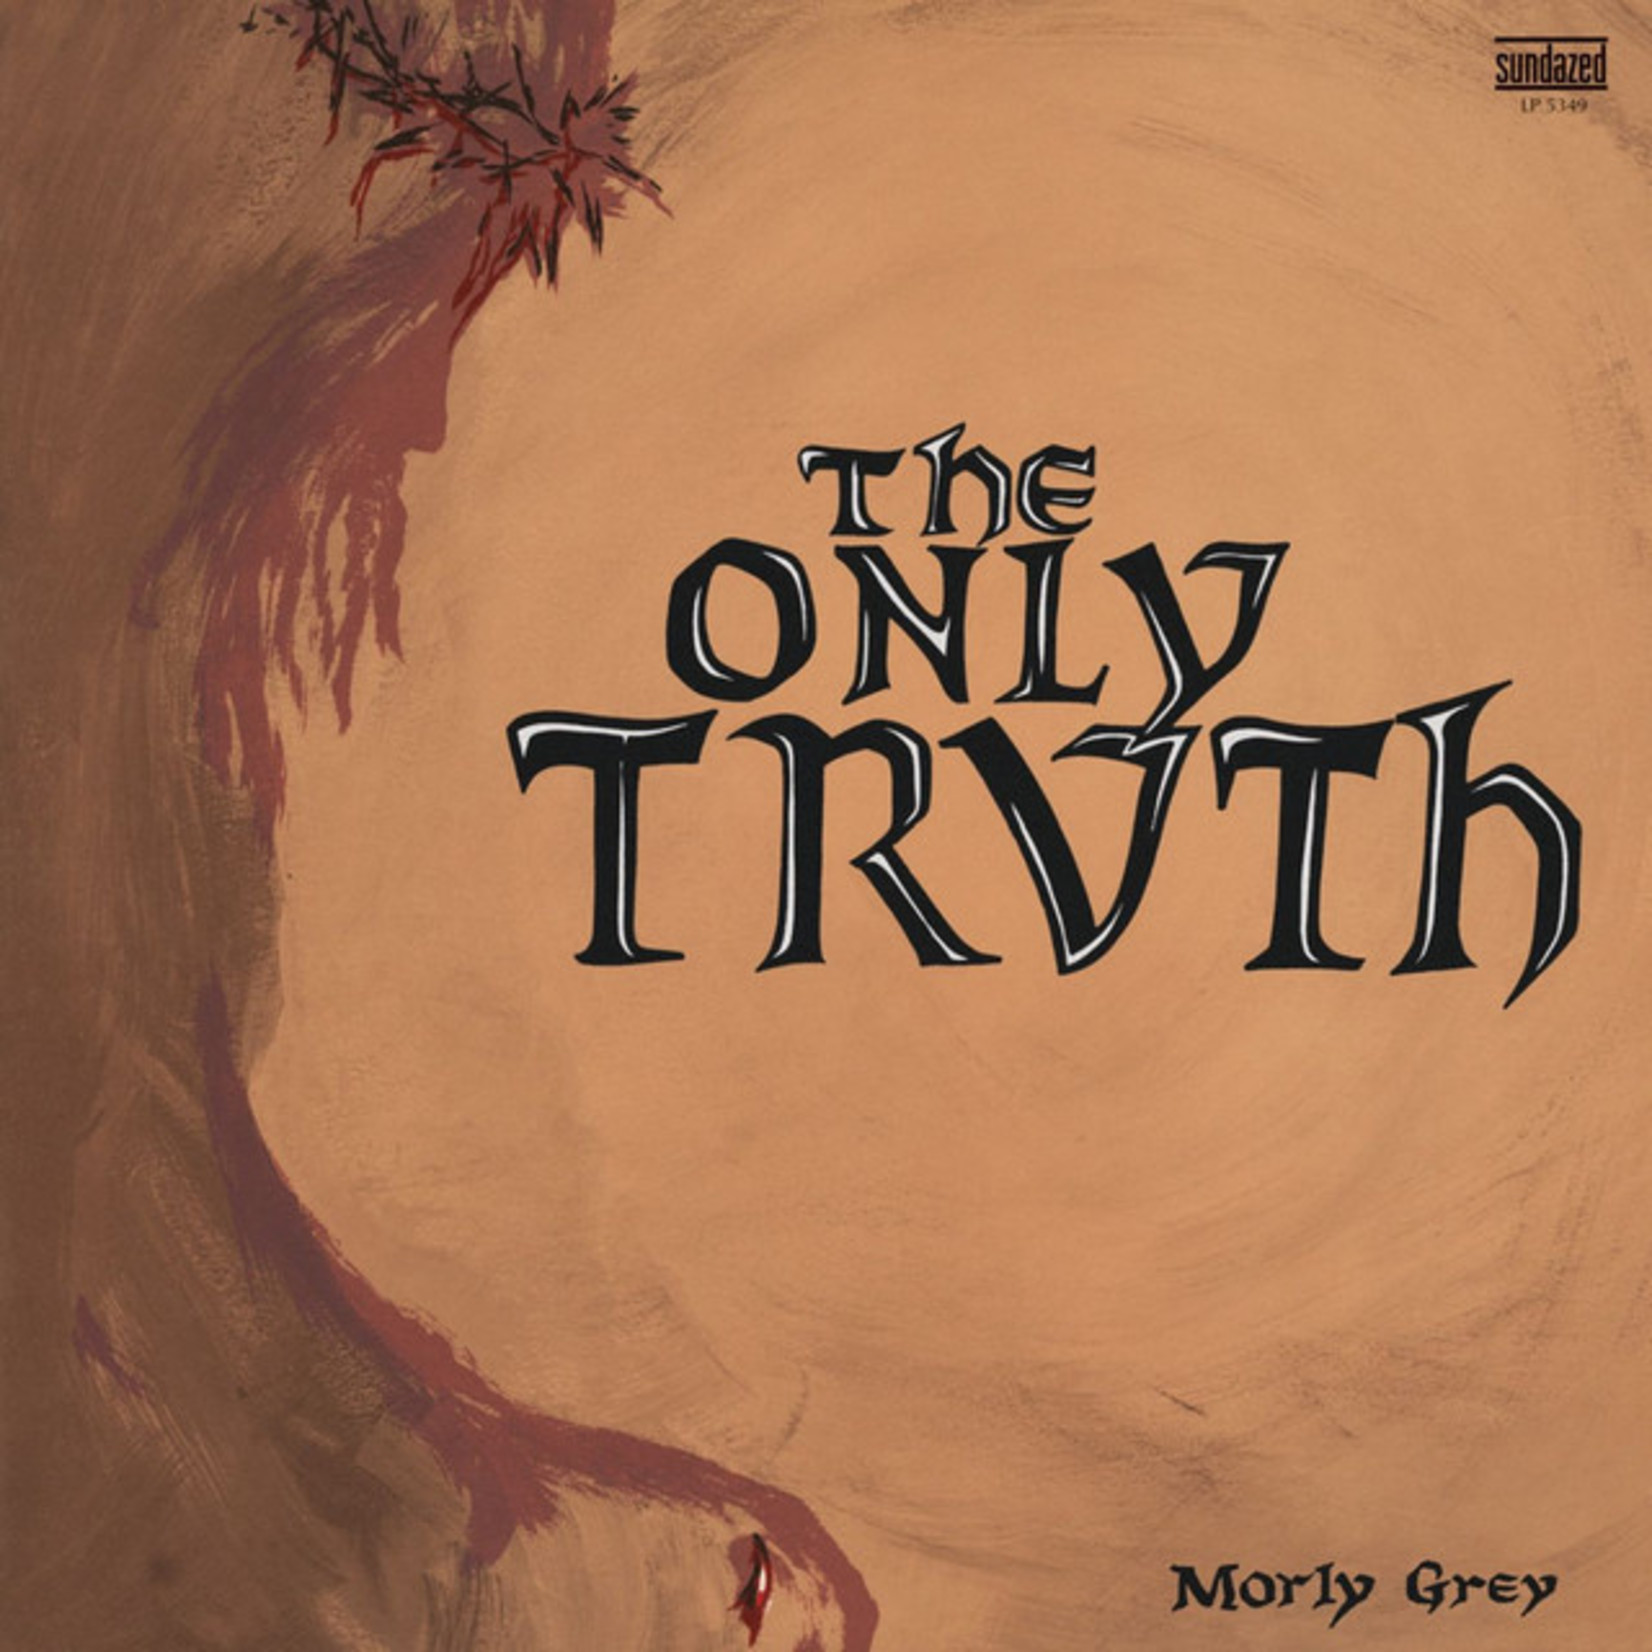 Vinyl Morly Grey - The Only Truth